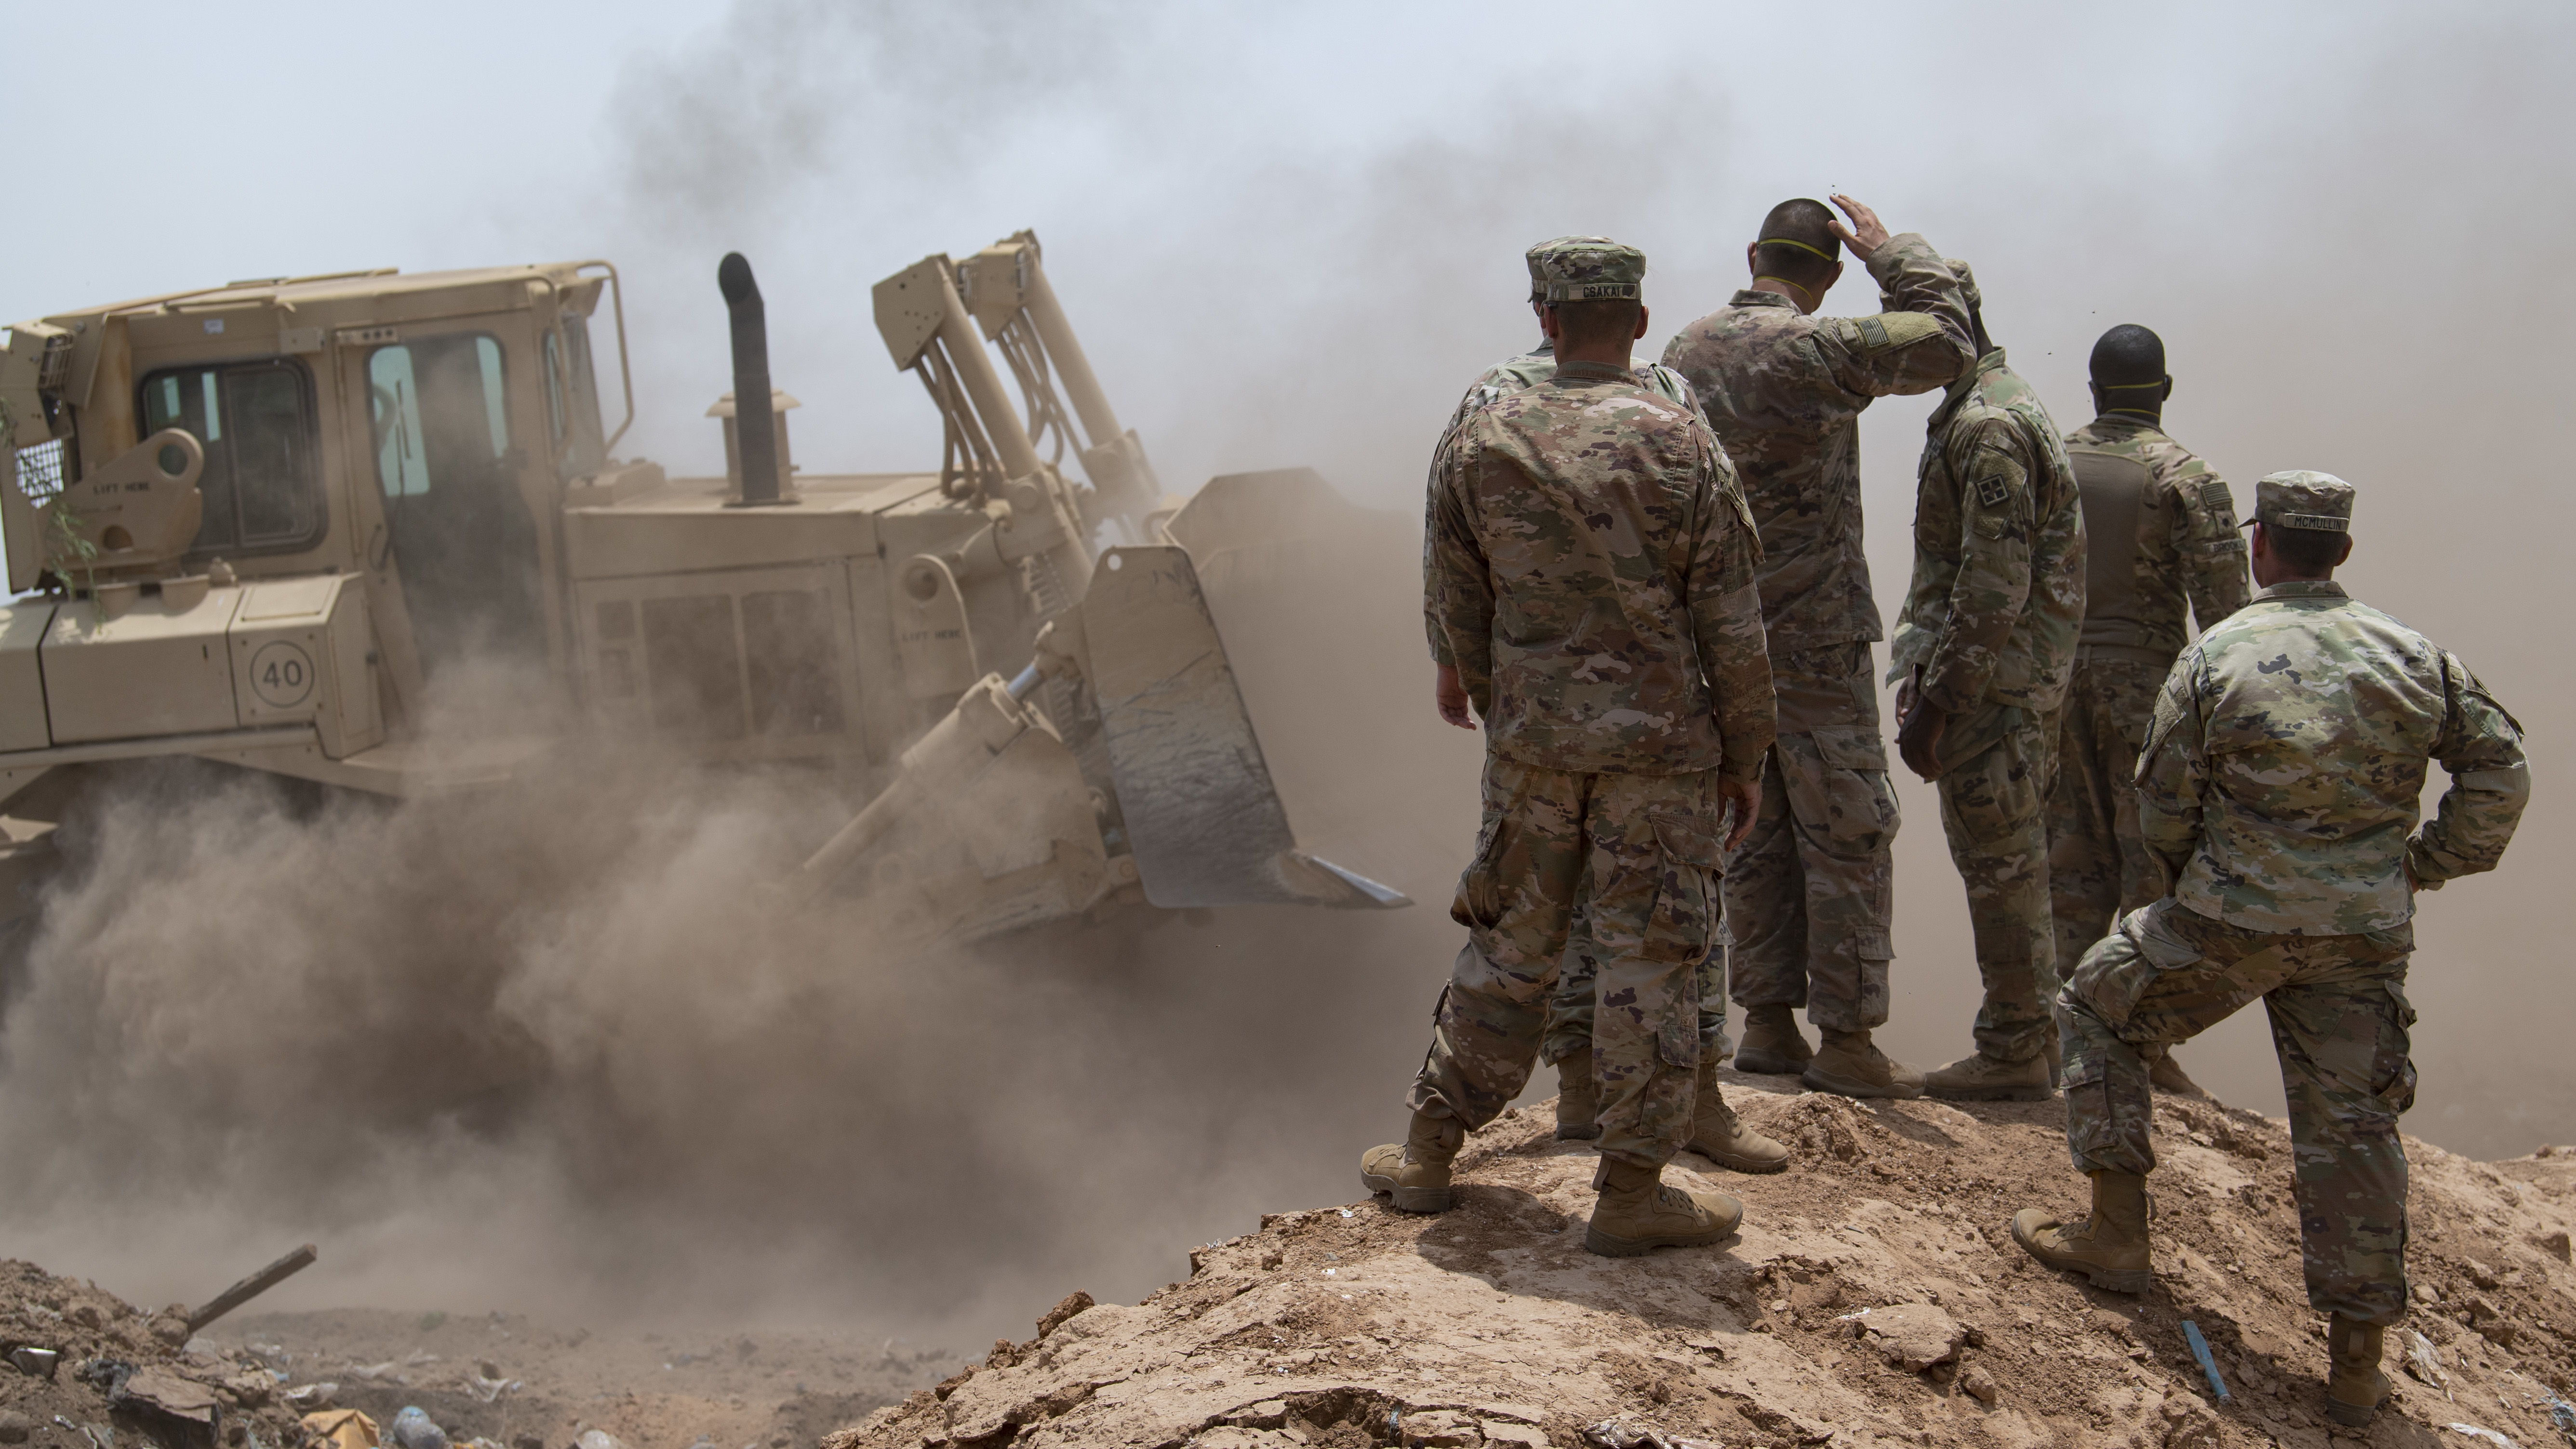 U.S. Army Soldiers from 465th Engineer Company, 926th Engineer Battalion, 926th Engineer Brigade, 412th Theater Engineer Command, based in Birmingham, Alabama, assigned to Combined Joint Task Force-Horn of Africa, assess the building of a dirt berm at the Douda landfill in Djibouti, Aug. 14, 2019. During a fire at the landfill, the 465th used bulldozers to create dirt berms that would make firebreaks and stop the flames from spreading outward. (U.S. Air Force photo by Staff Sgt. J.D. Strong II)